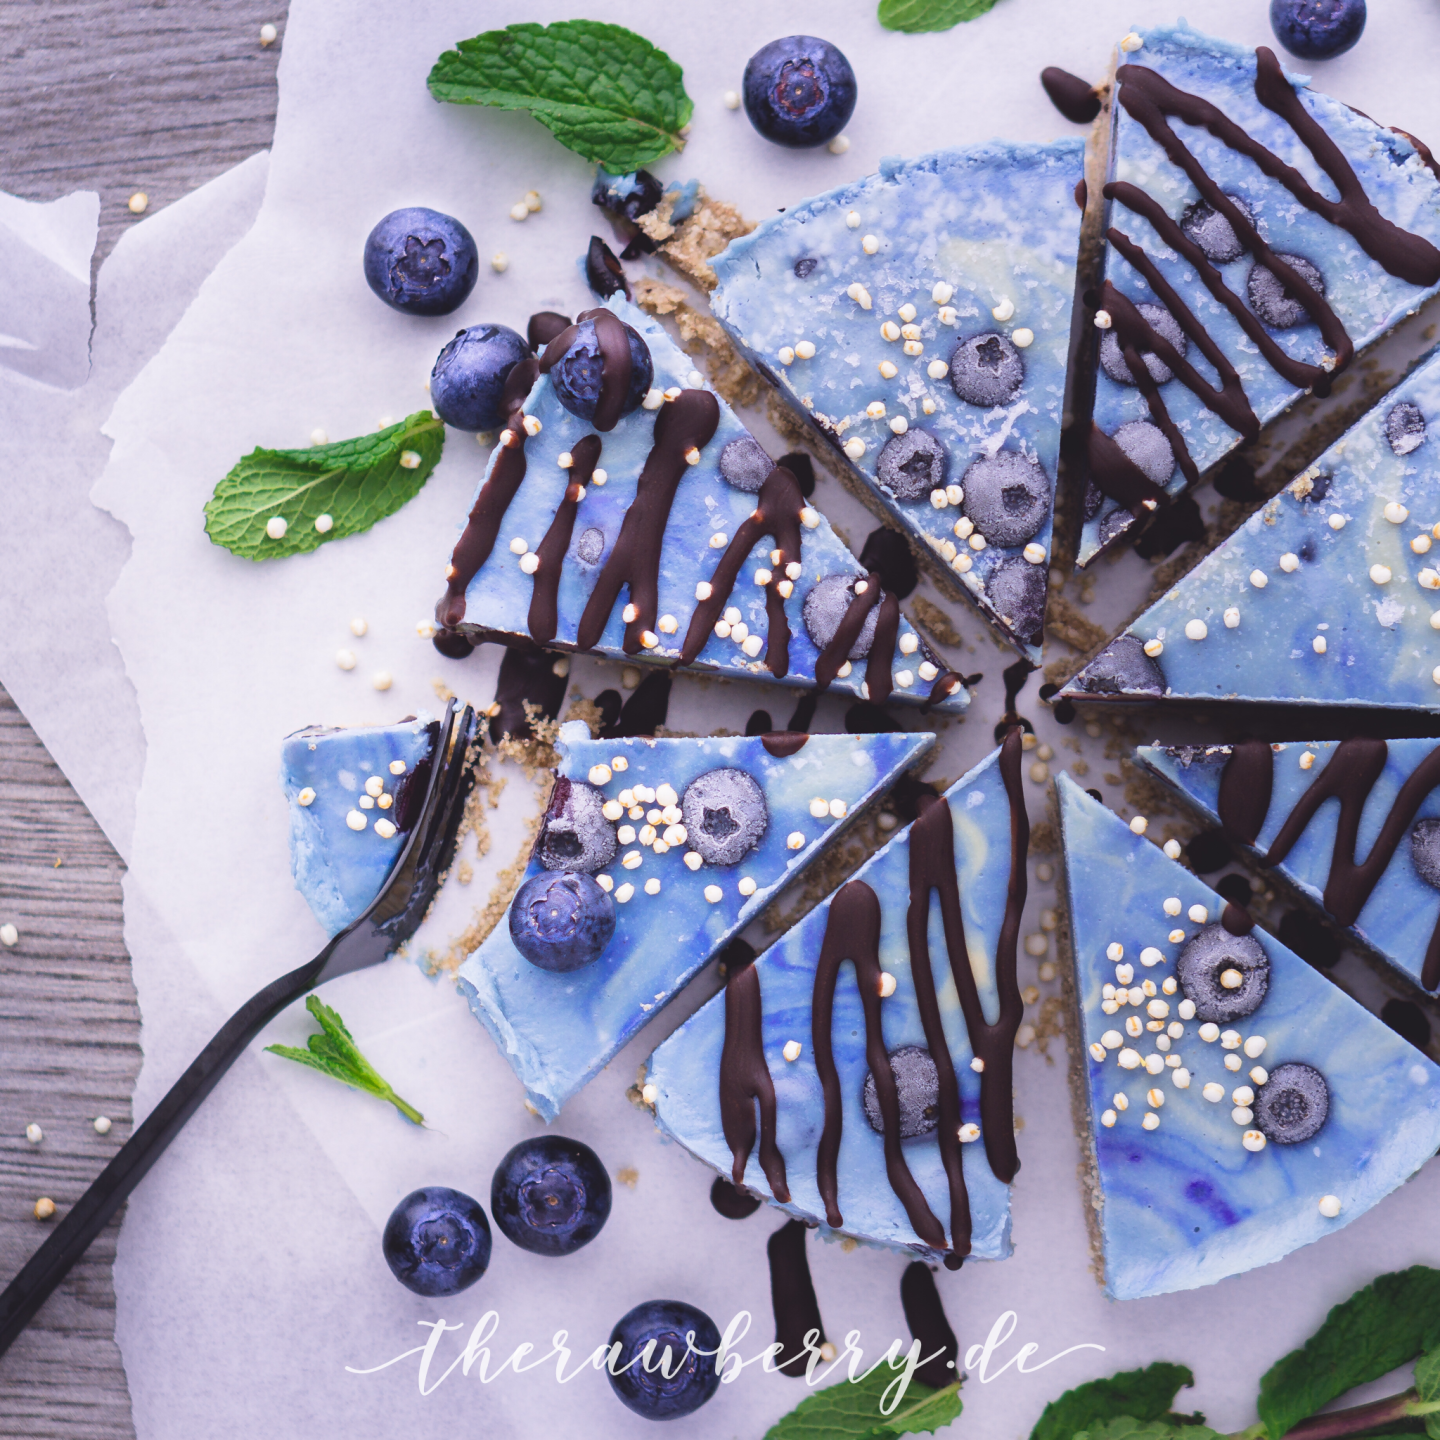 cake, raw, vegan, blueberries, recipe, no sugar, easy , lactose free, dairy free, chocolate, fork, brunch, delicious, spiraling, healthy, mint, easy, food, dessert